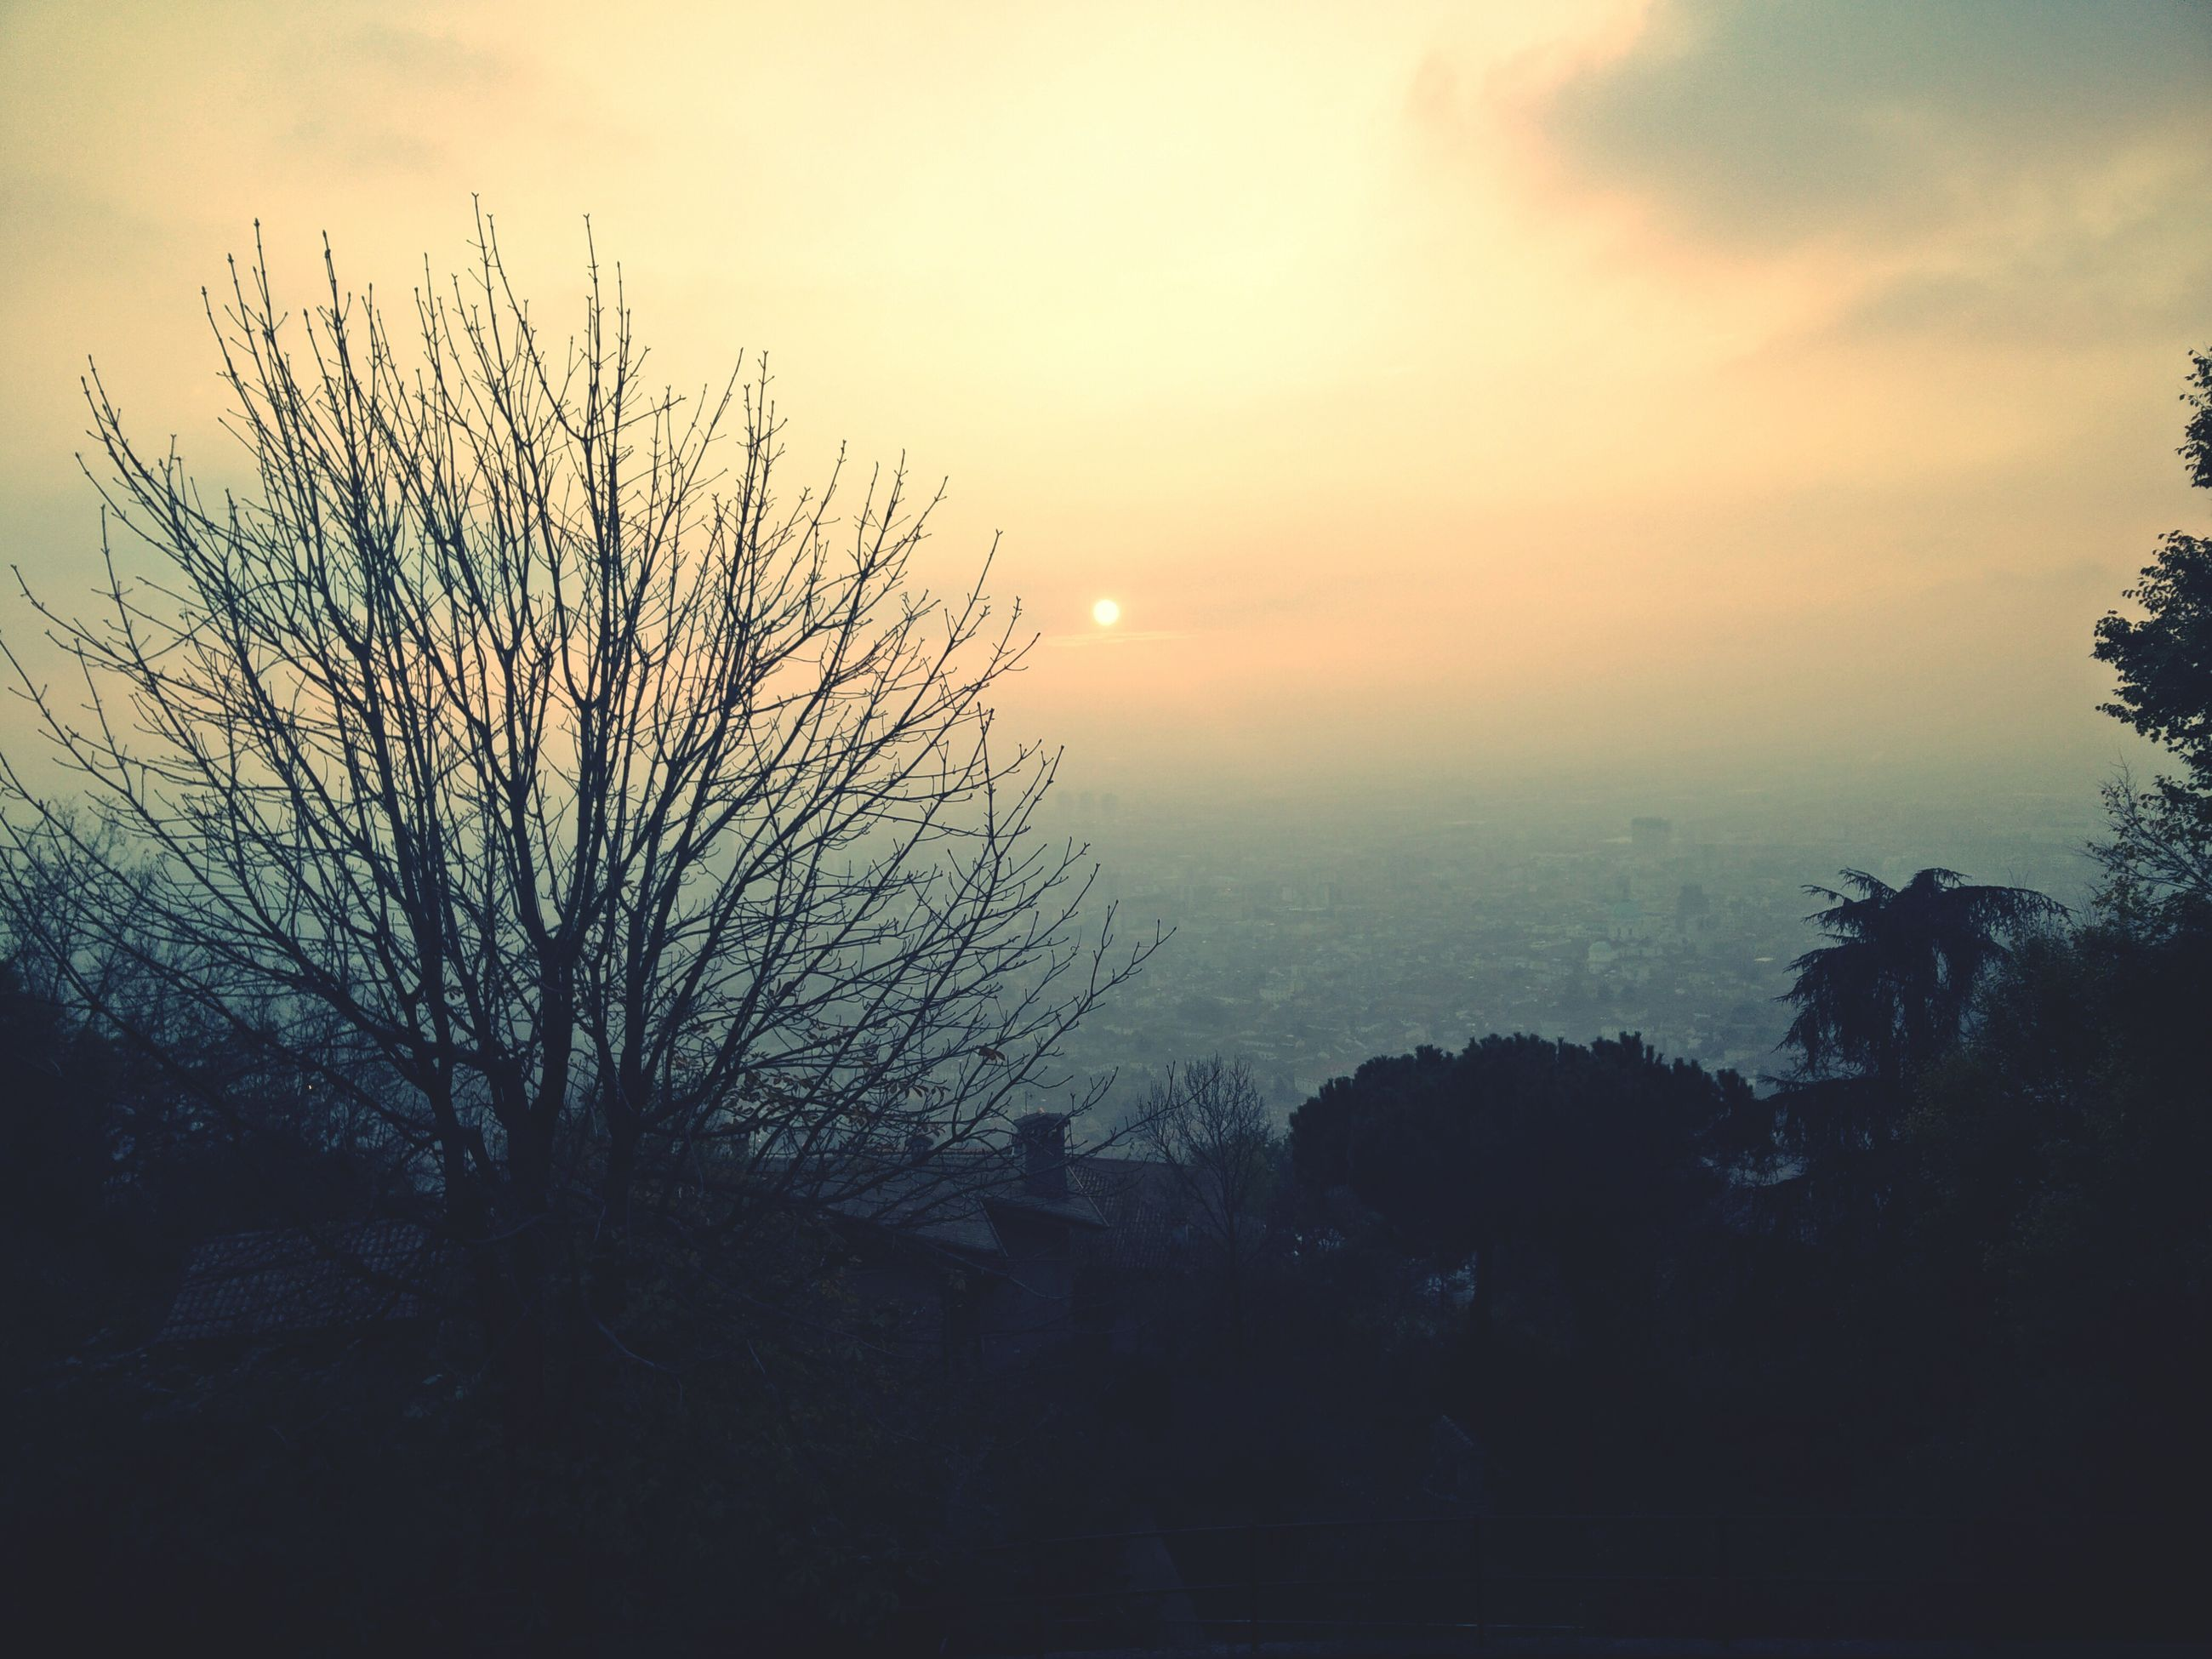 sunset, silhouette, sky, tranquility, tranquil scene, scenics, beauty in nature, tree, nature, sun, bare tree, cloud - sky, idyllic, growth, branch, landscape, plant, dusk, outdoors, no people